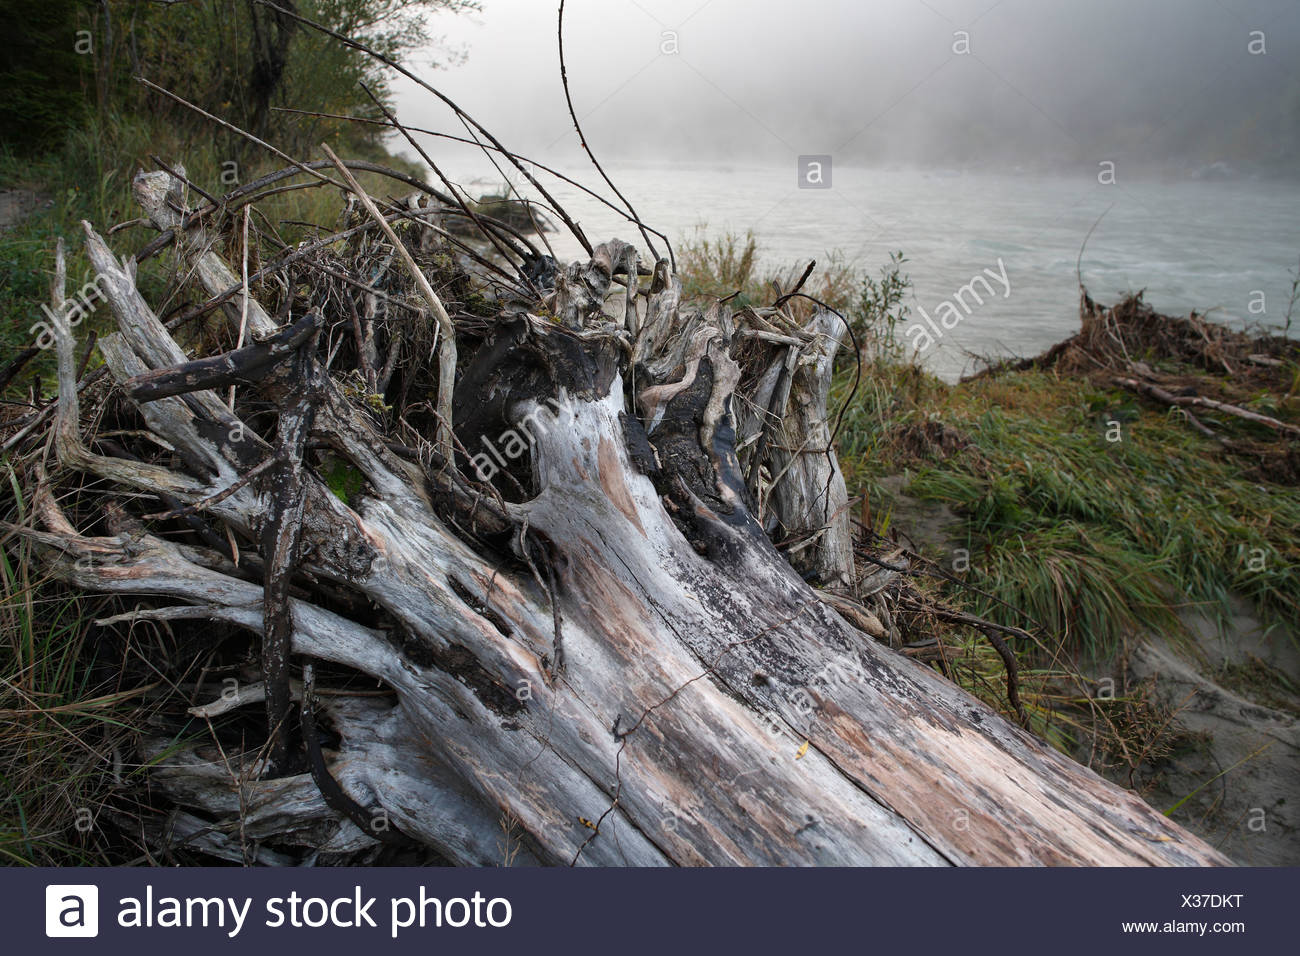 Tree root, Isar river, Upper Bavaria, Germany - Stock Image